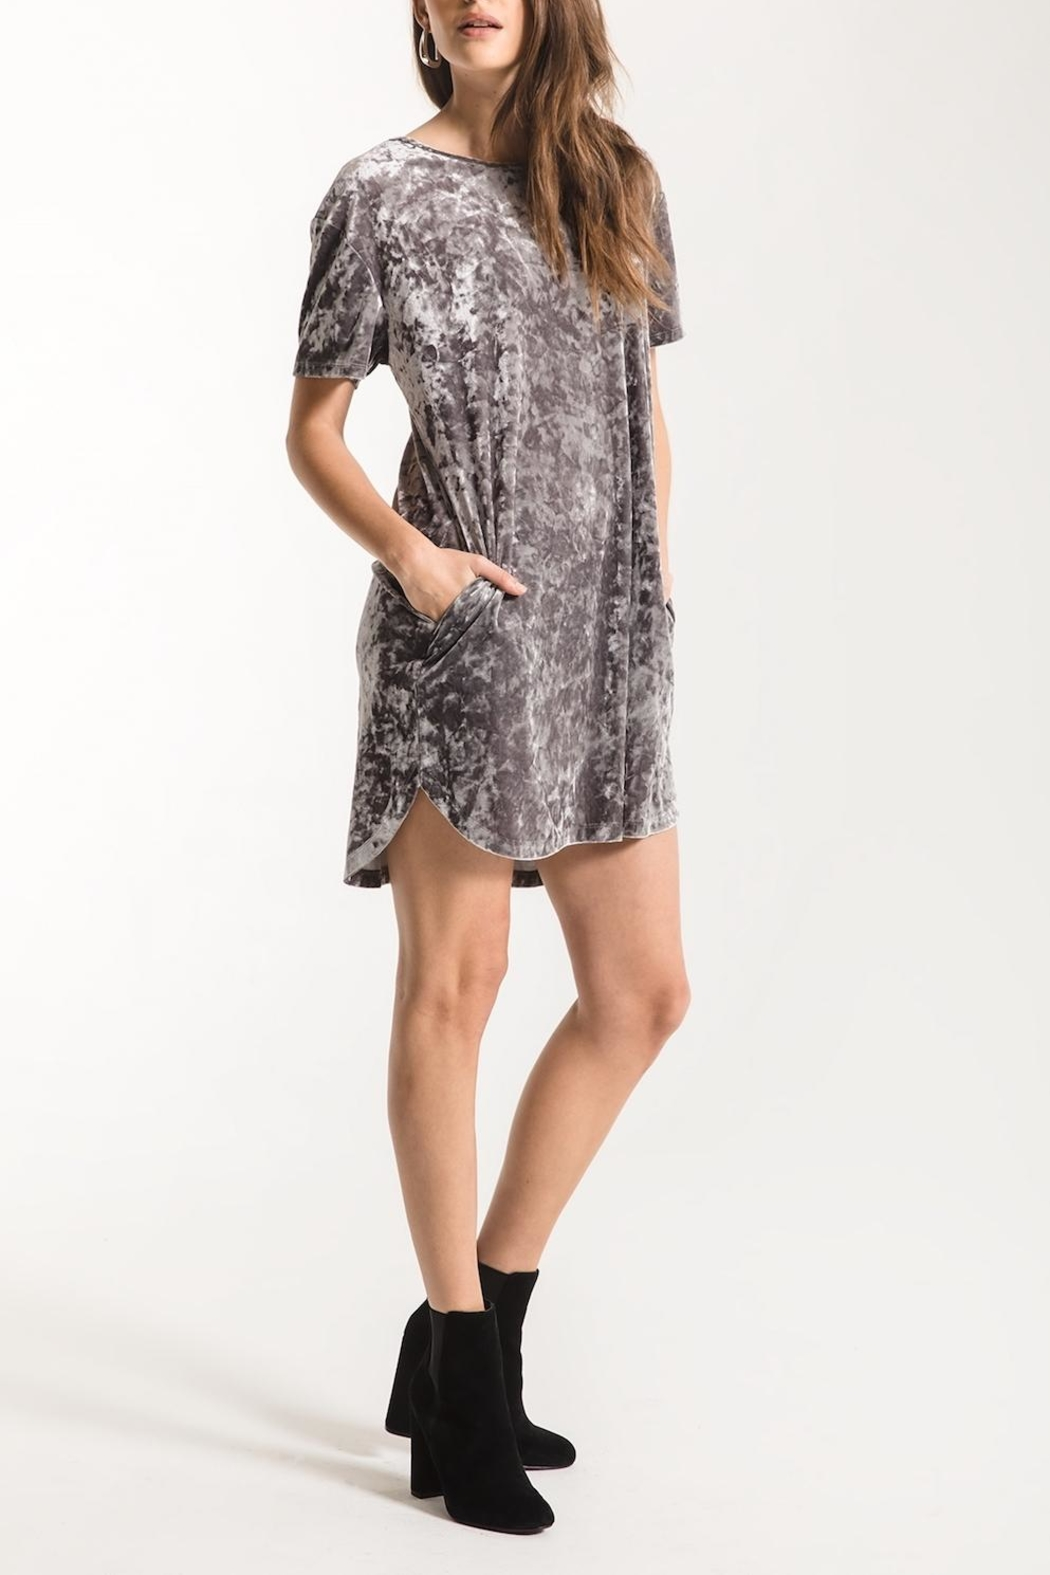 z supply Crushed Velour Dress - Front Full Image